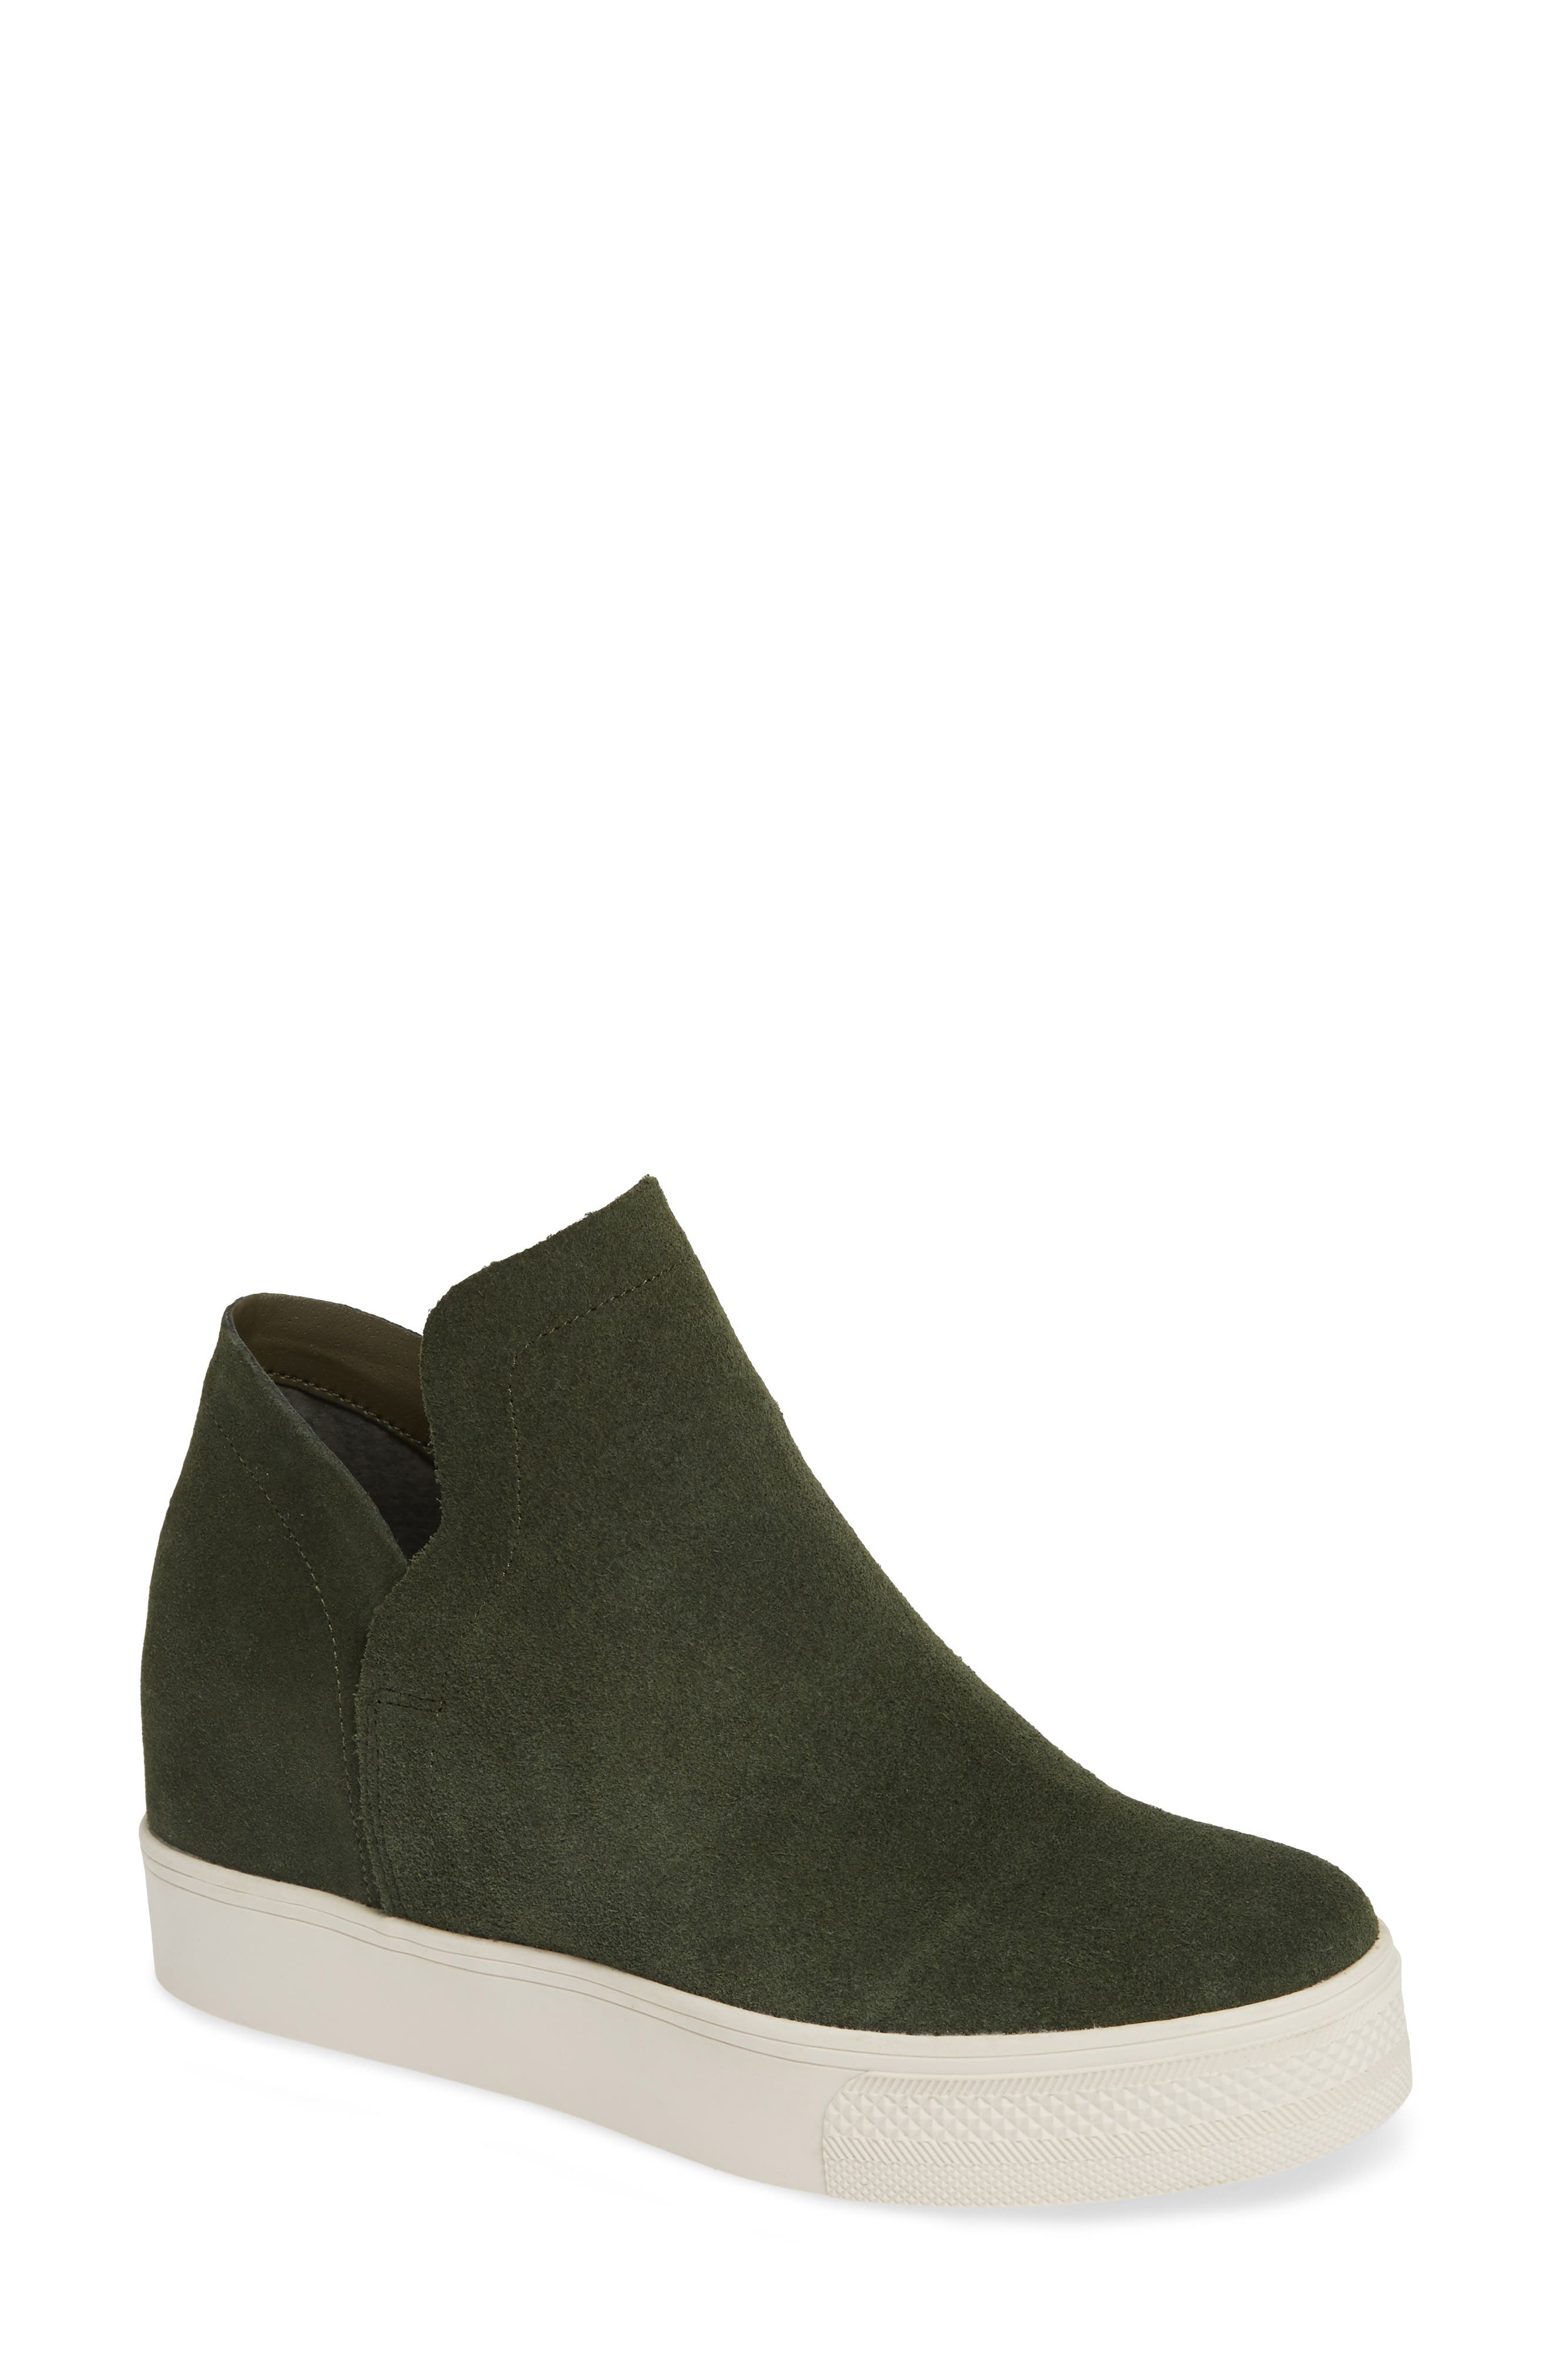 Wrangle Sneaker,                         Main,                         color, OLIVE SUEDE